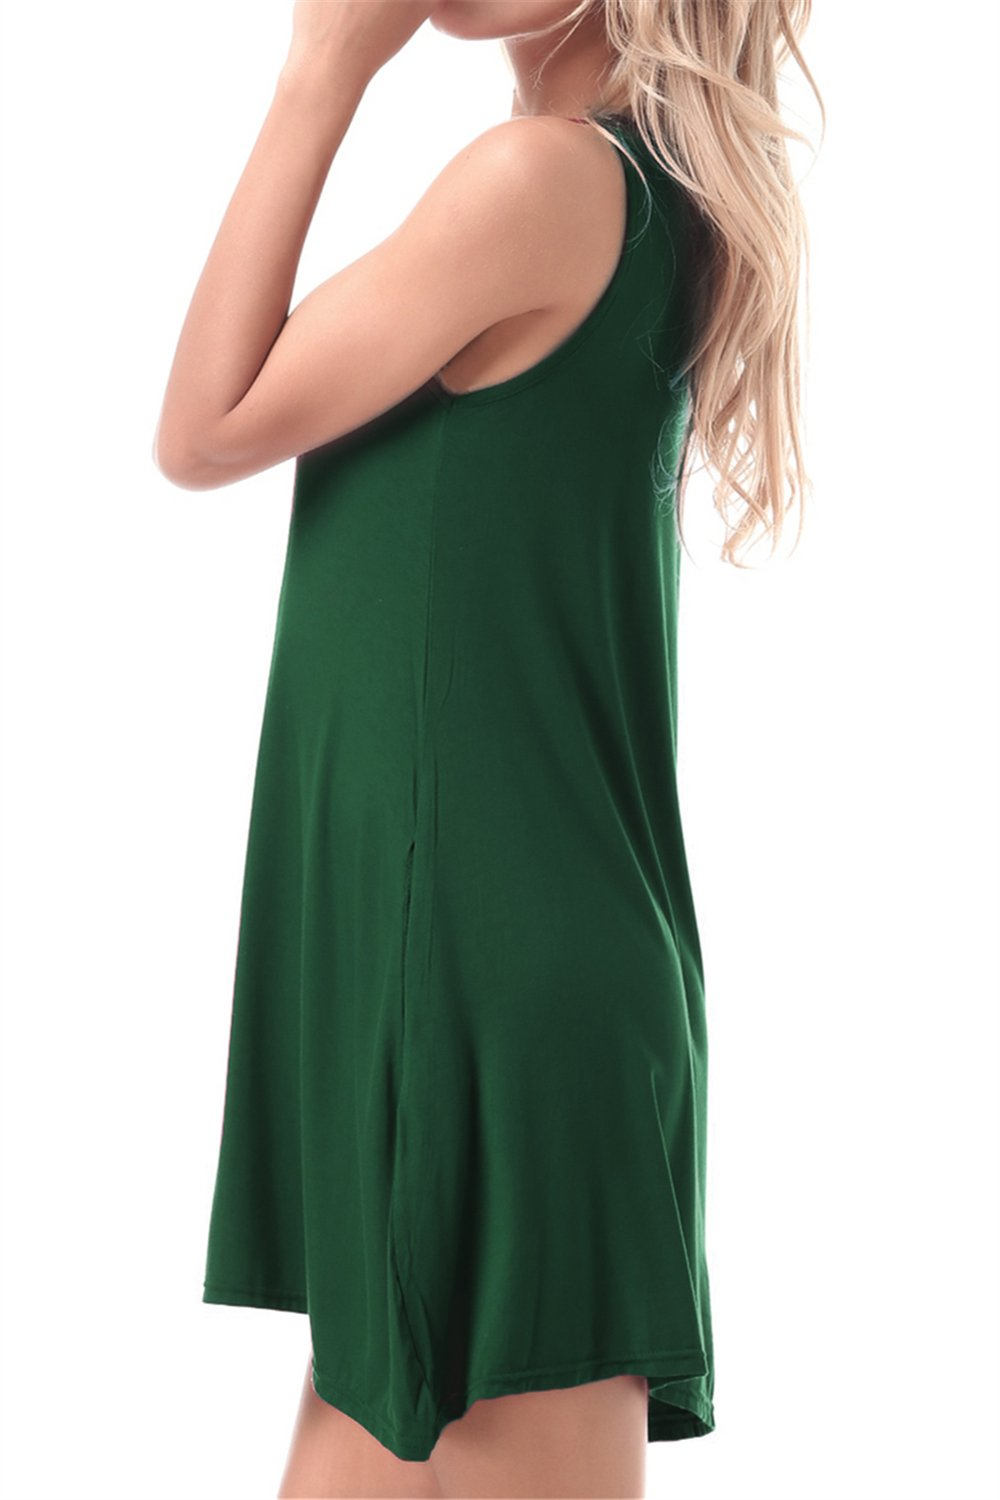 FISOUL Women Tops O-Neck Sleeveless Dress With Double Pockets Loose Bottoming Shirt Green M by FISOUL (Image #2)